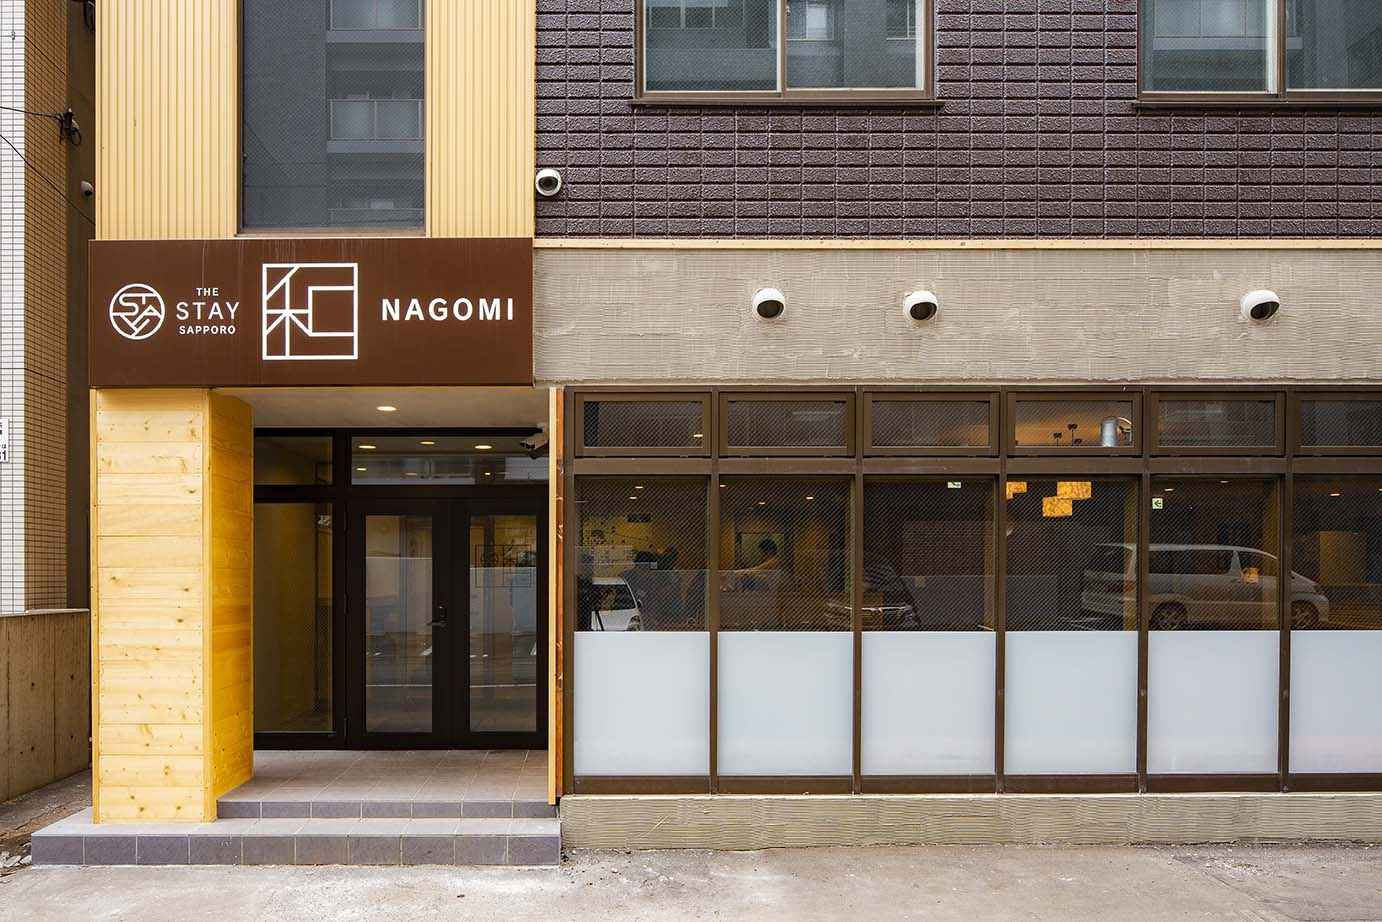 THE STAY SAPPORO 和ーNAGOMIー...